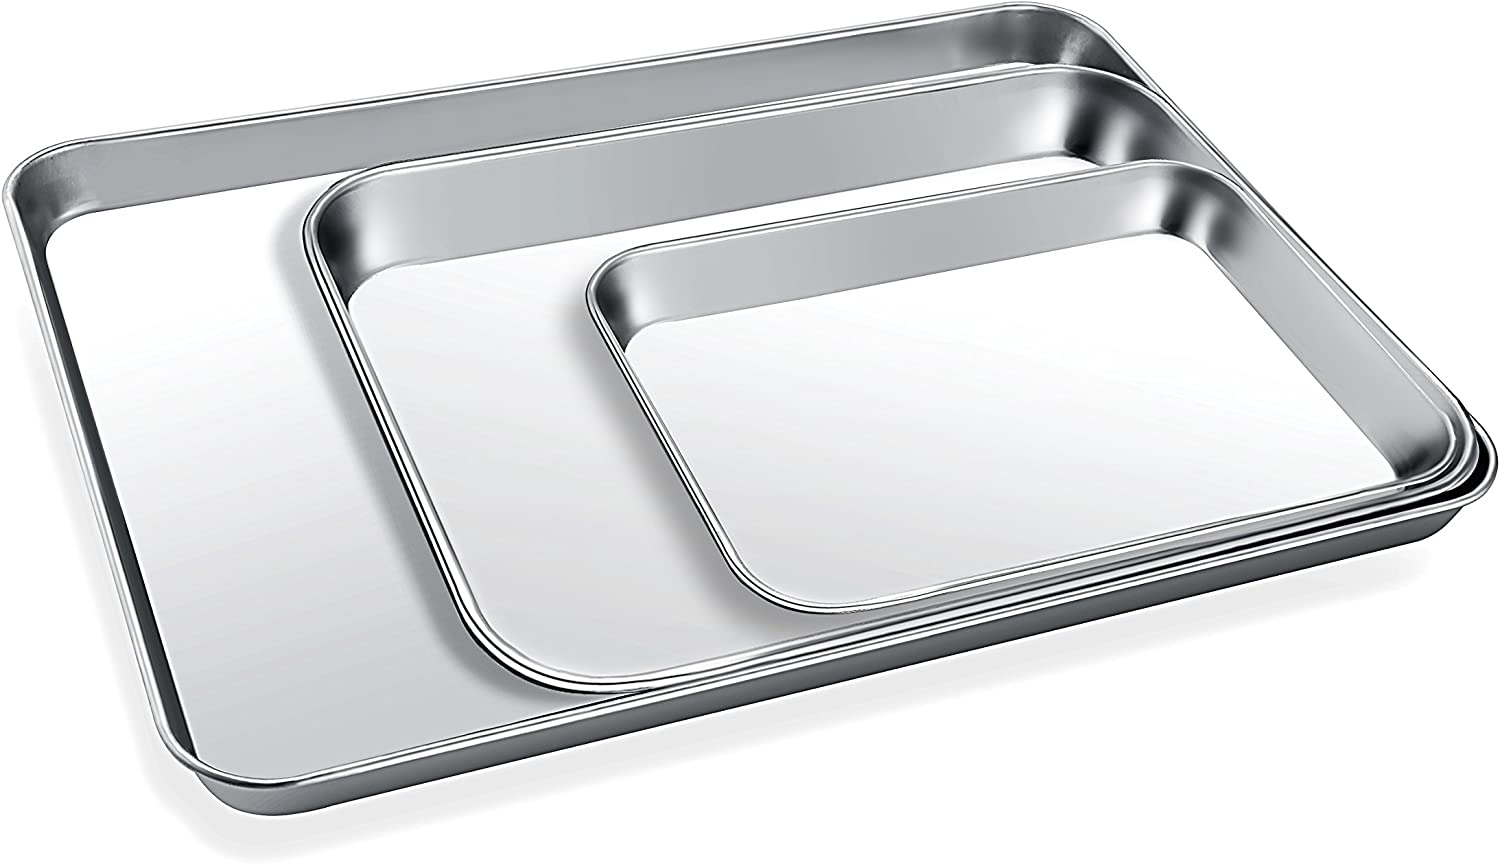 Baking Sheet Set 3, Zacfton Cookie Sheet Stainless Steel Toaster Oven Tray Pan Rectangle, Non Toxic Healthy,Superior Mirror Finish Easy Clean, Dishwasher Safe 16inch 12inch 9inch